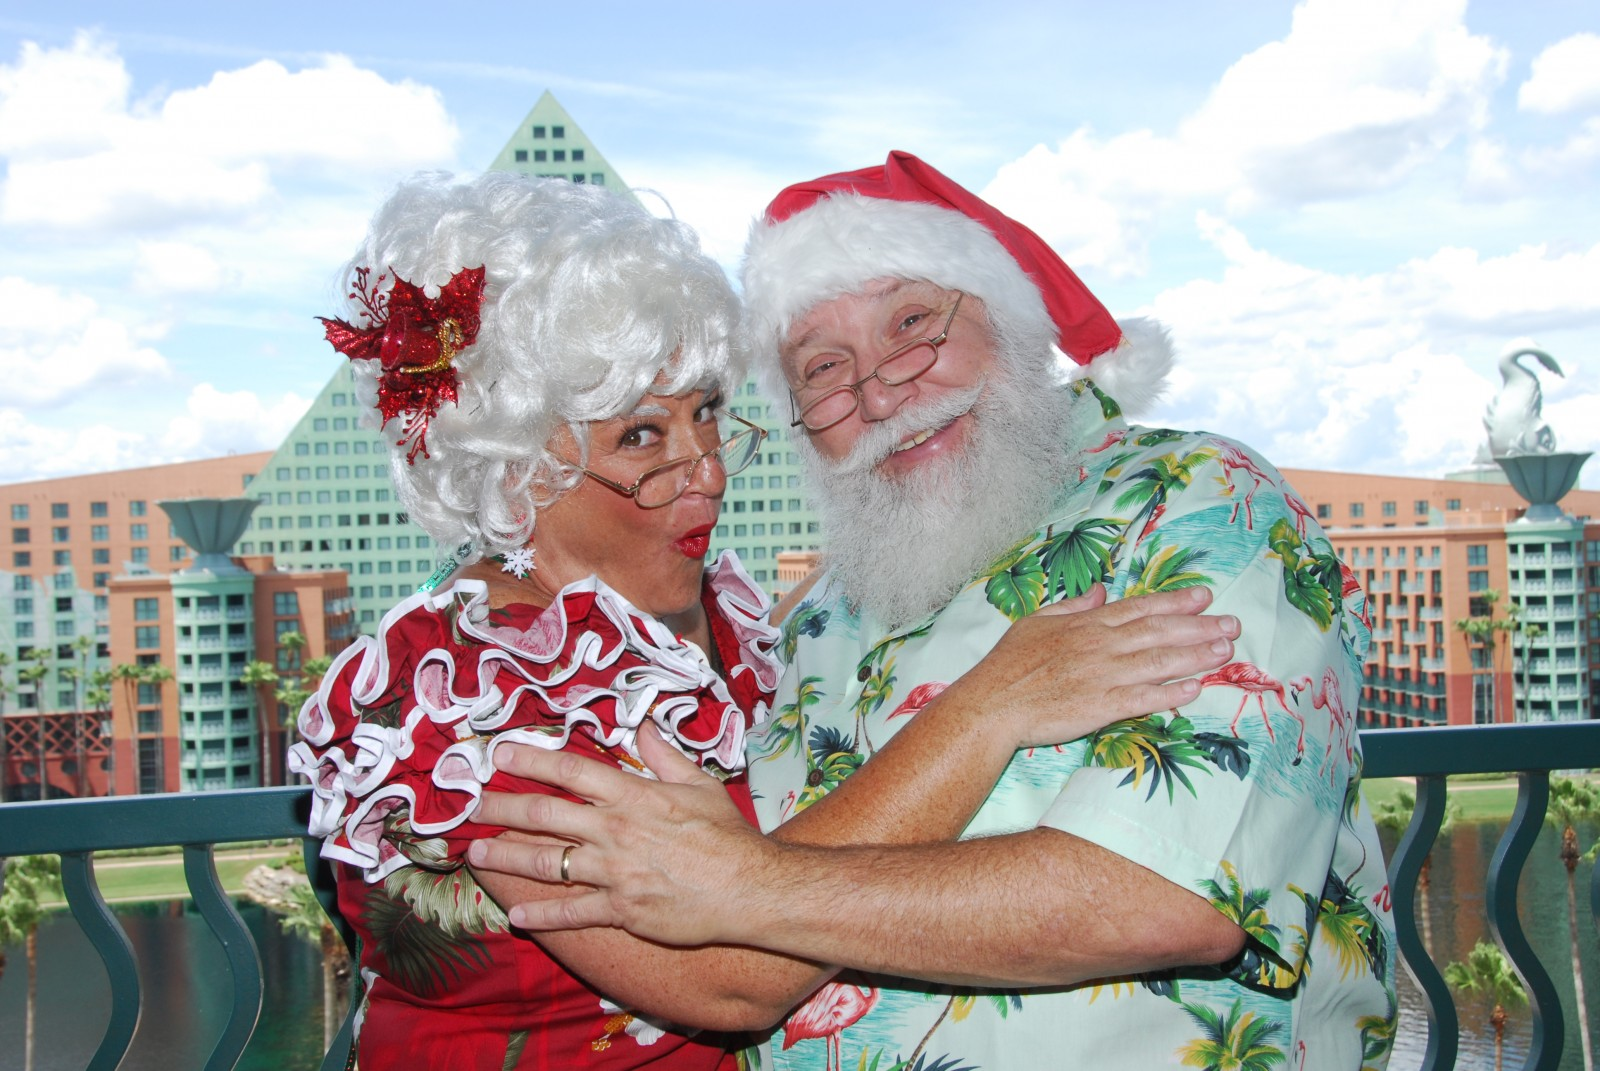 Walt Disney World Swan and Dolphin Hotel Christmas Santa and Mrs. Claus on the balcony